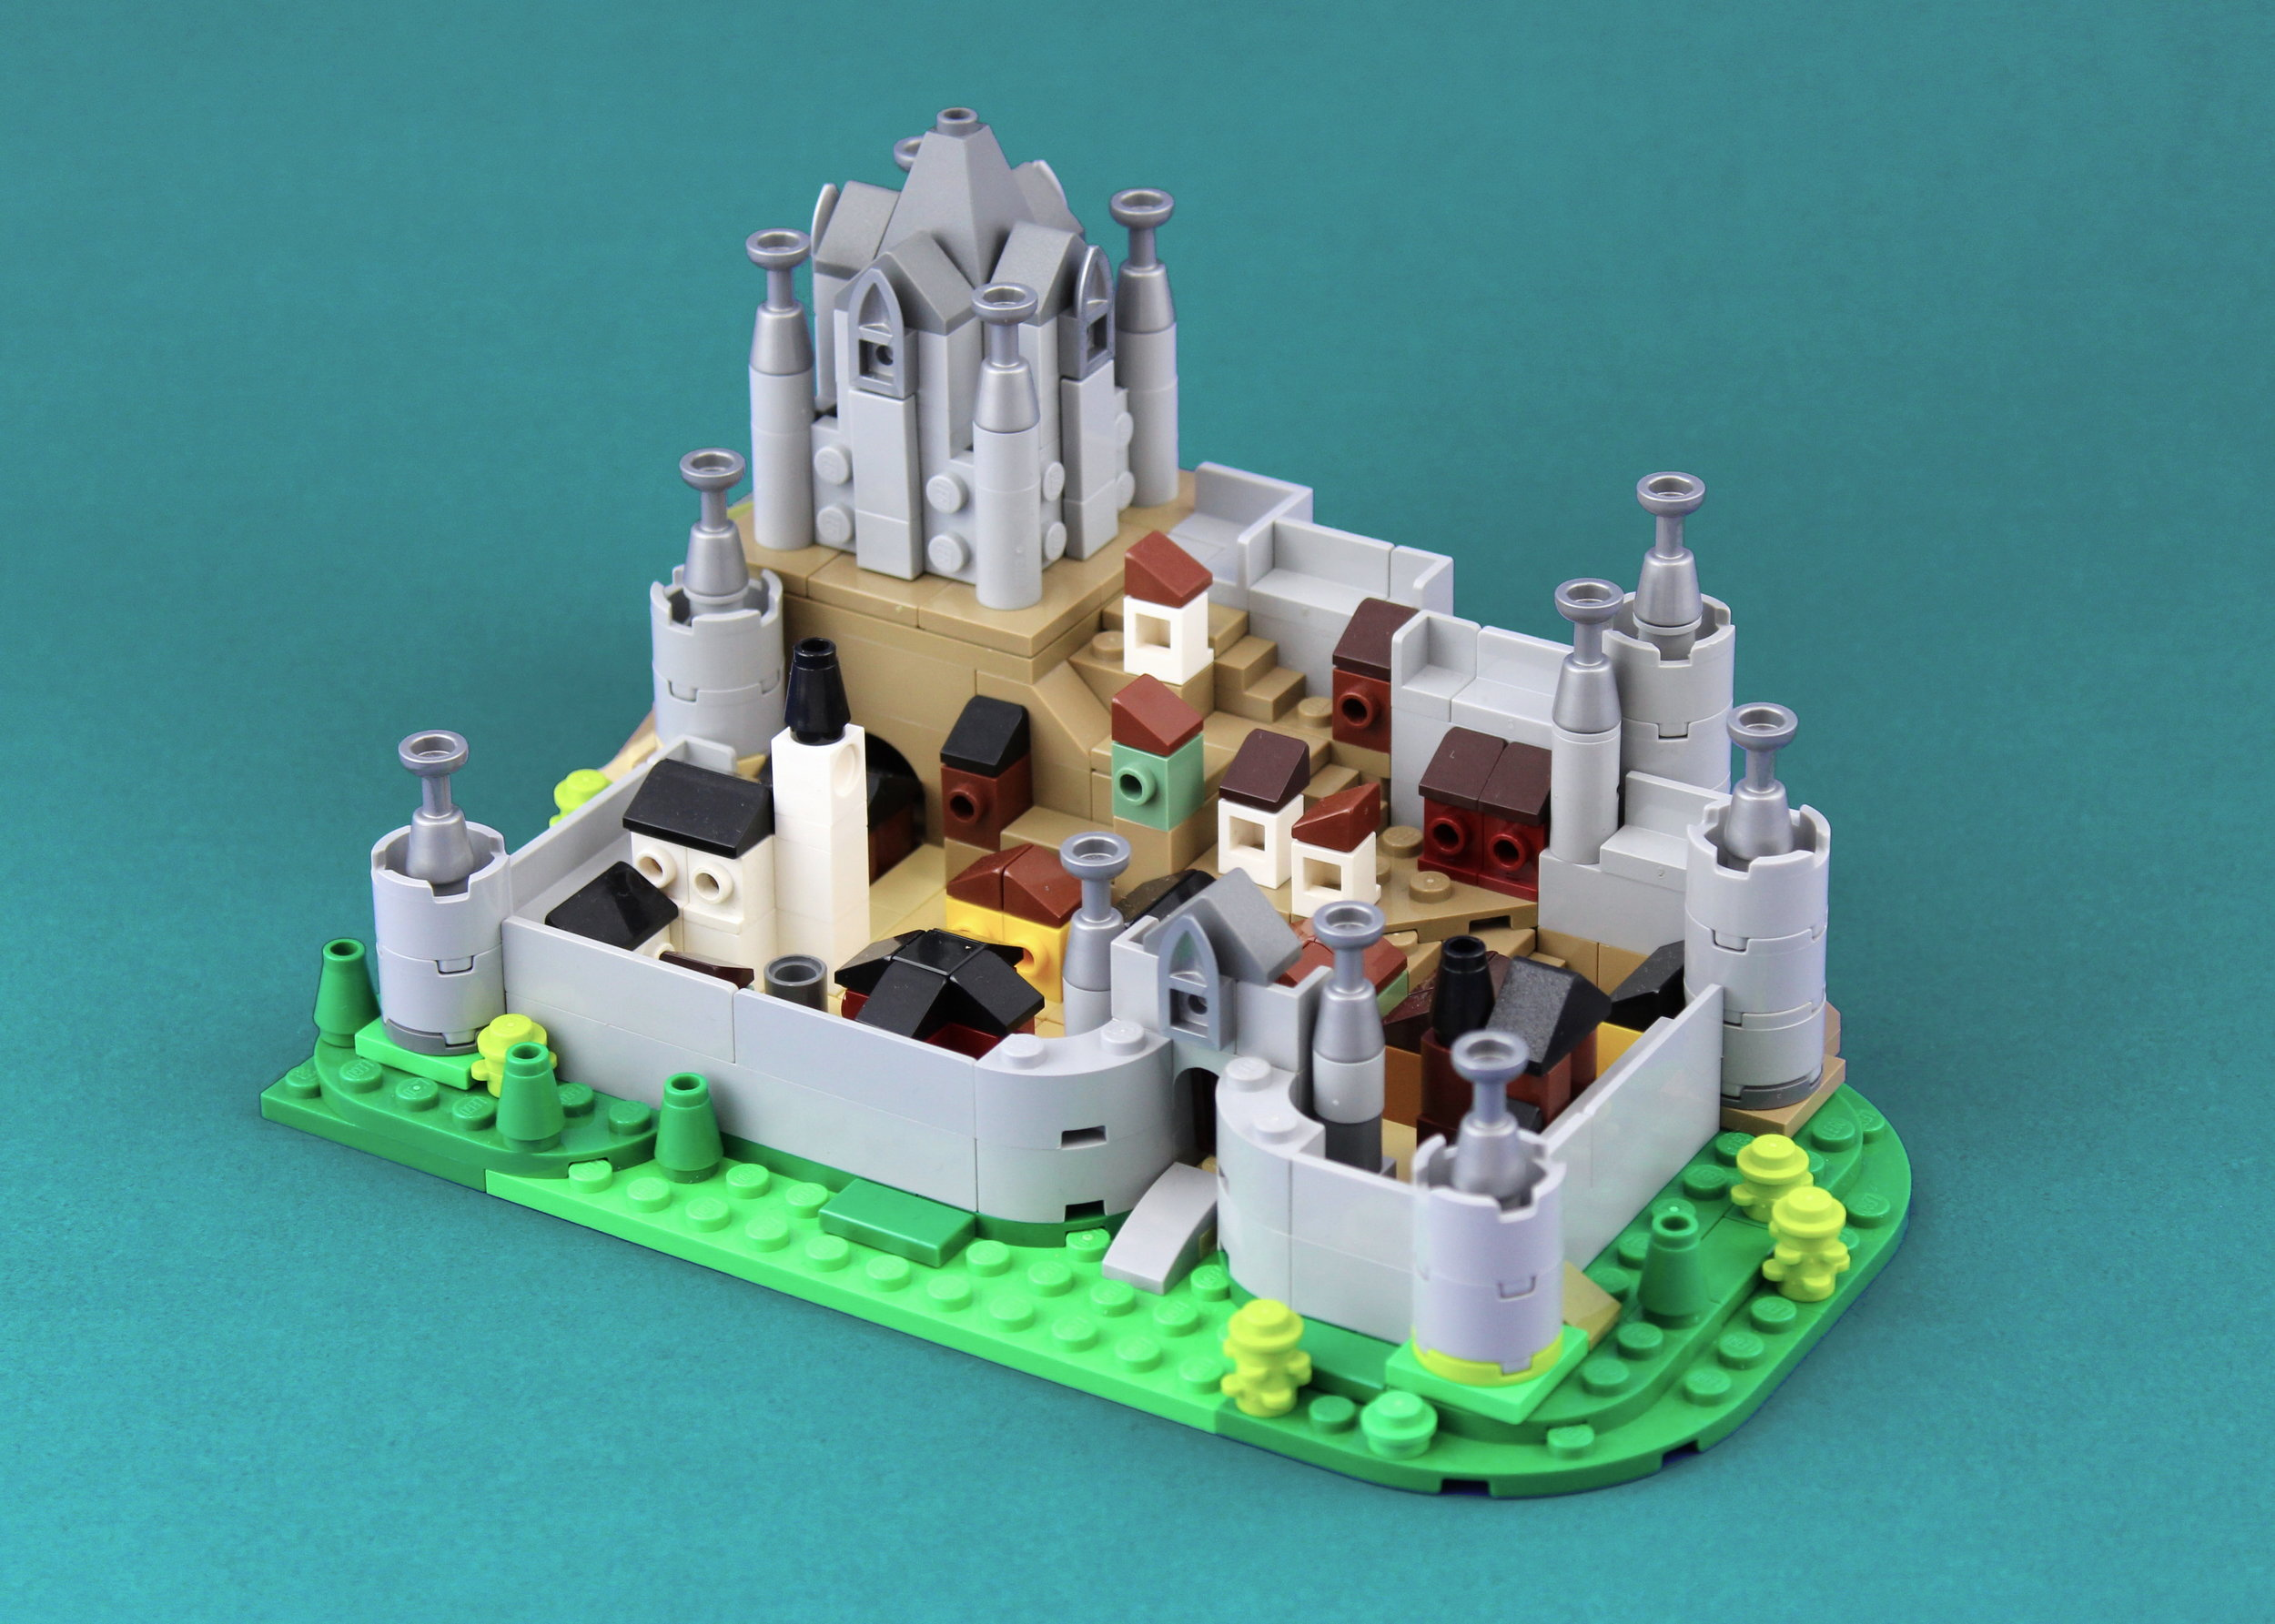 Another view of the castle, showing off the microscale village inside.